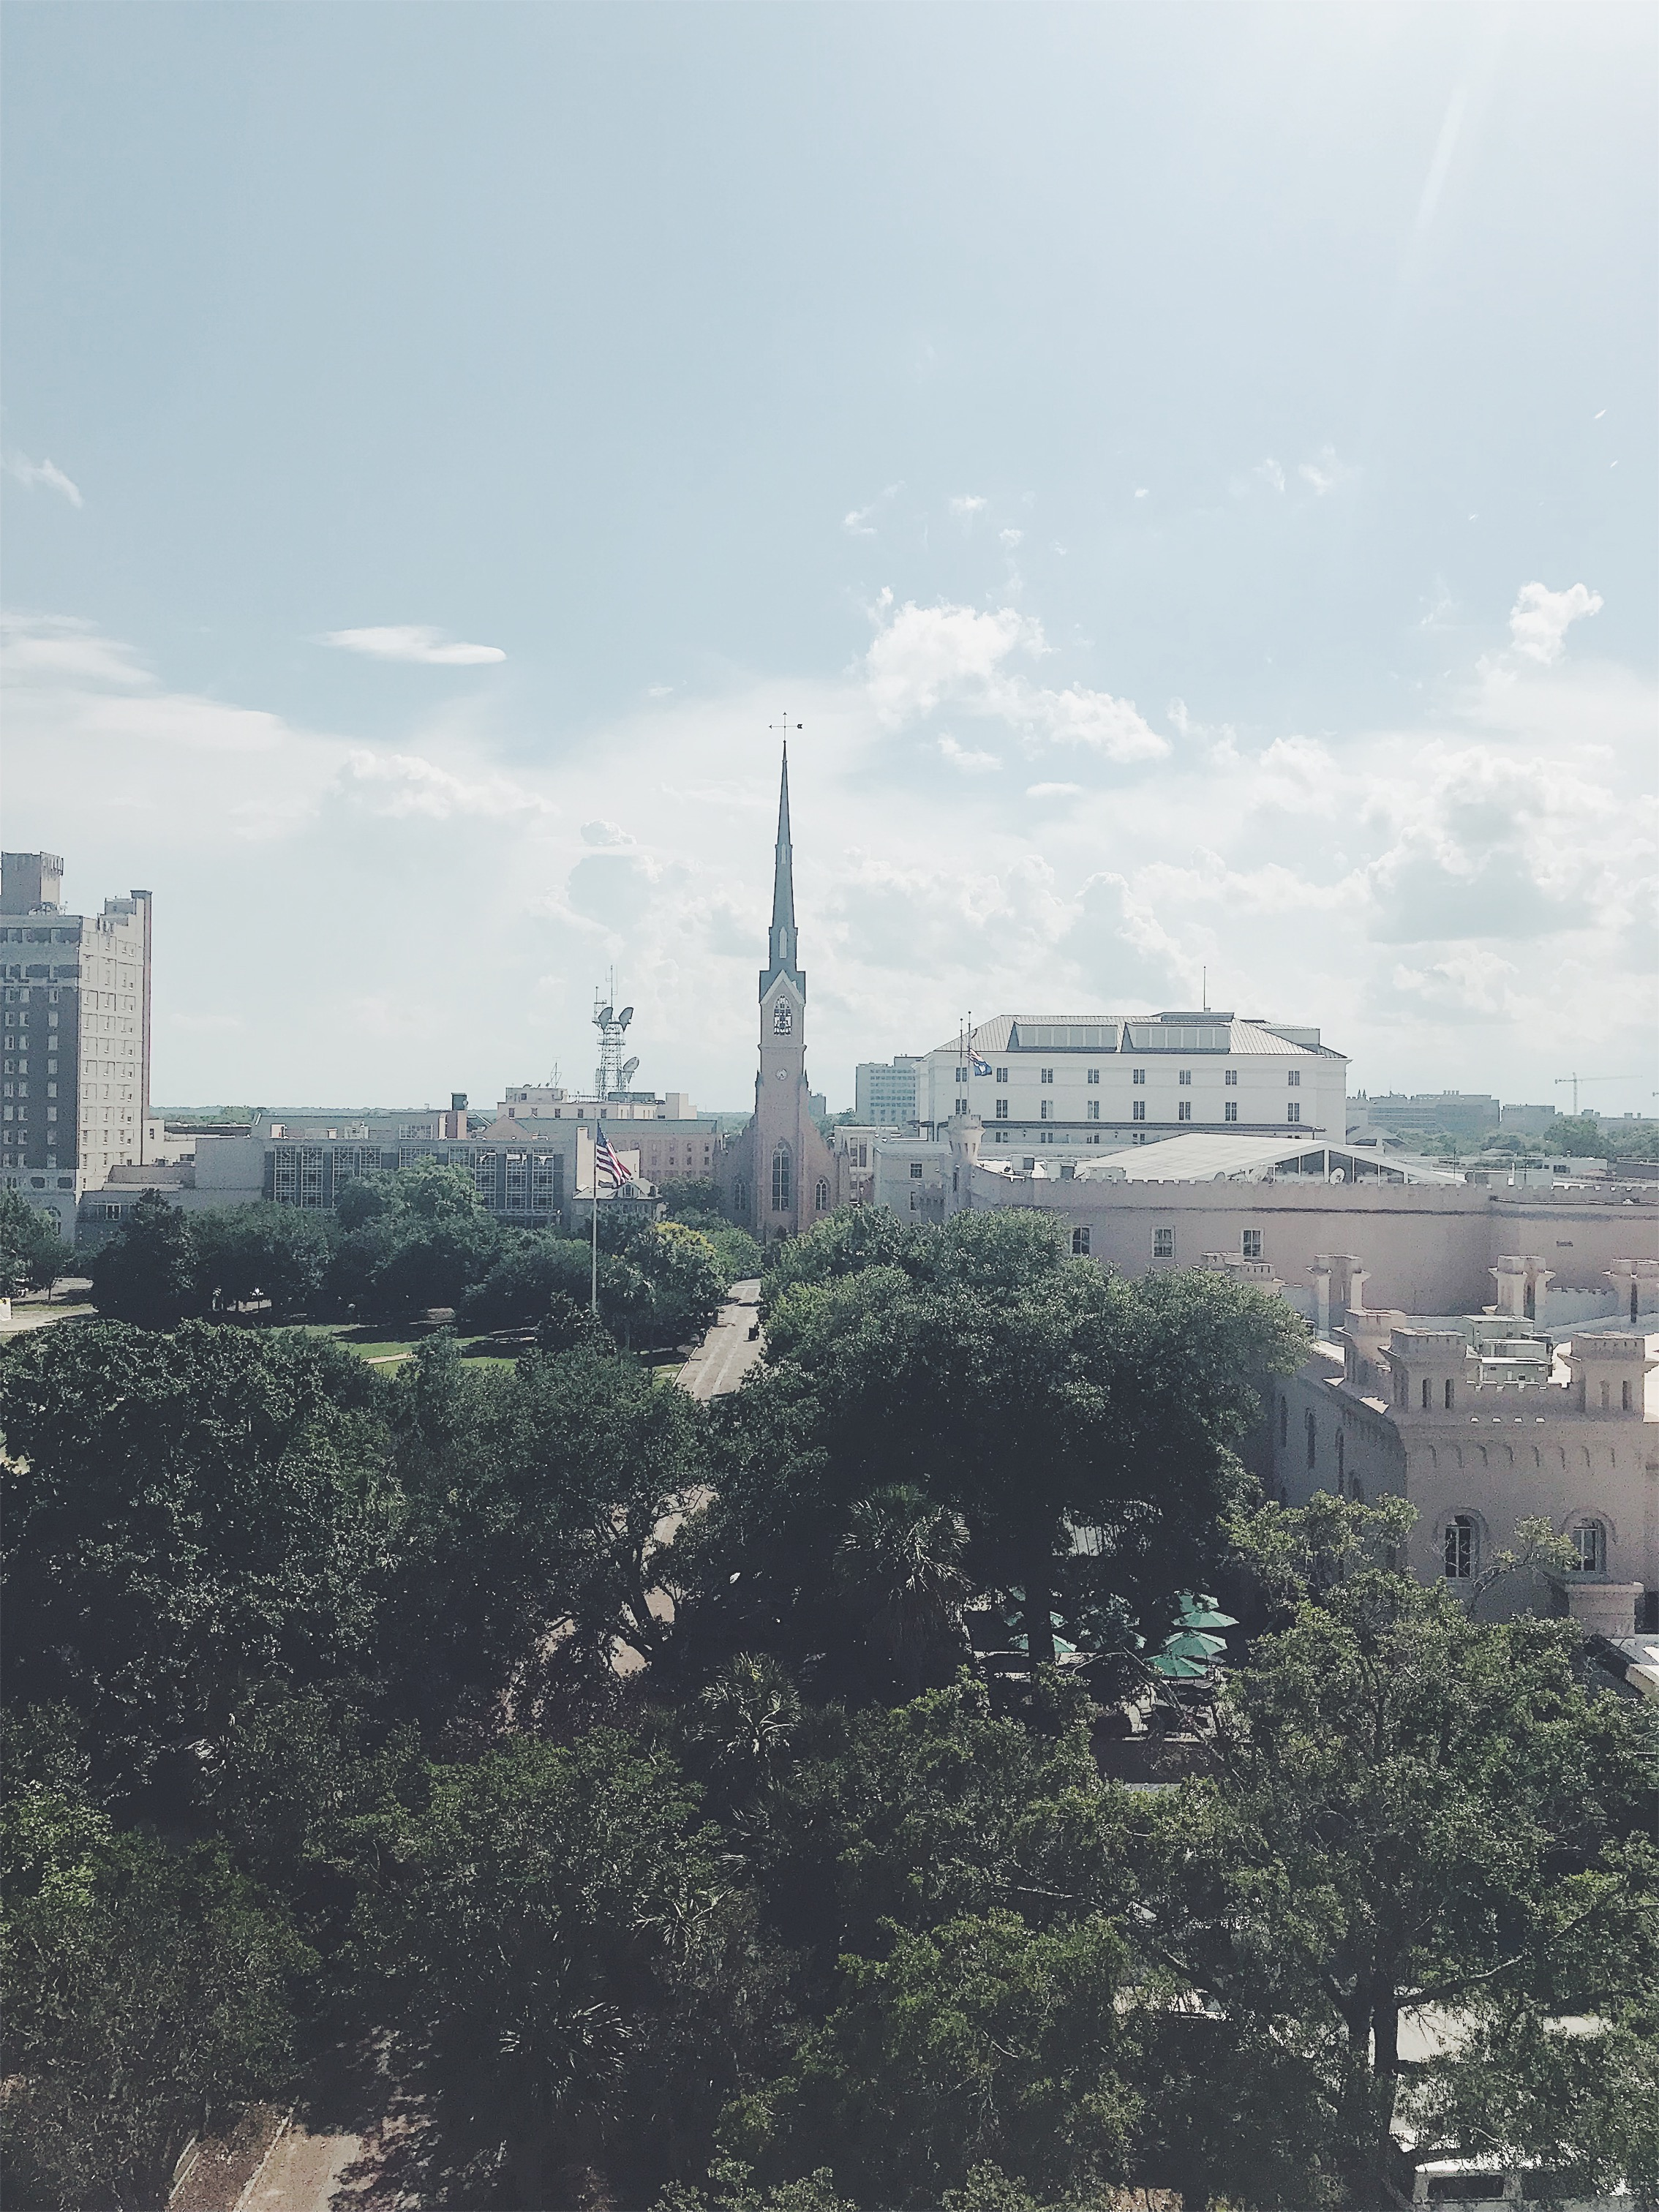 Church views in charleston